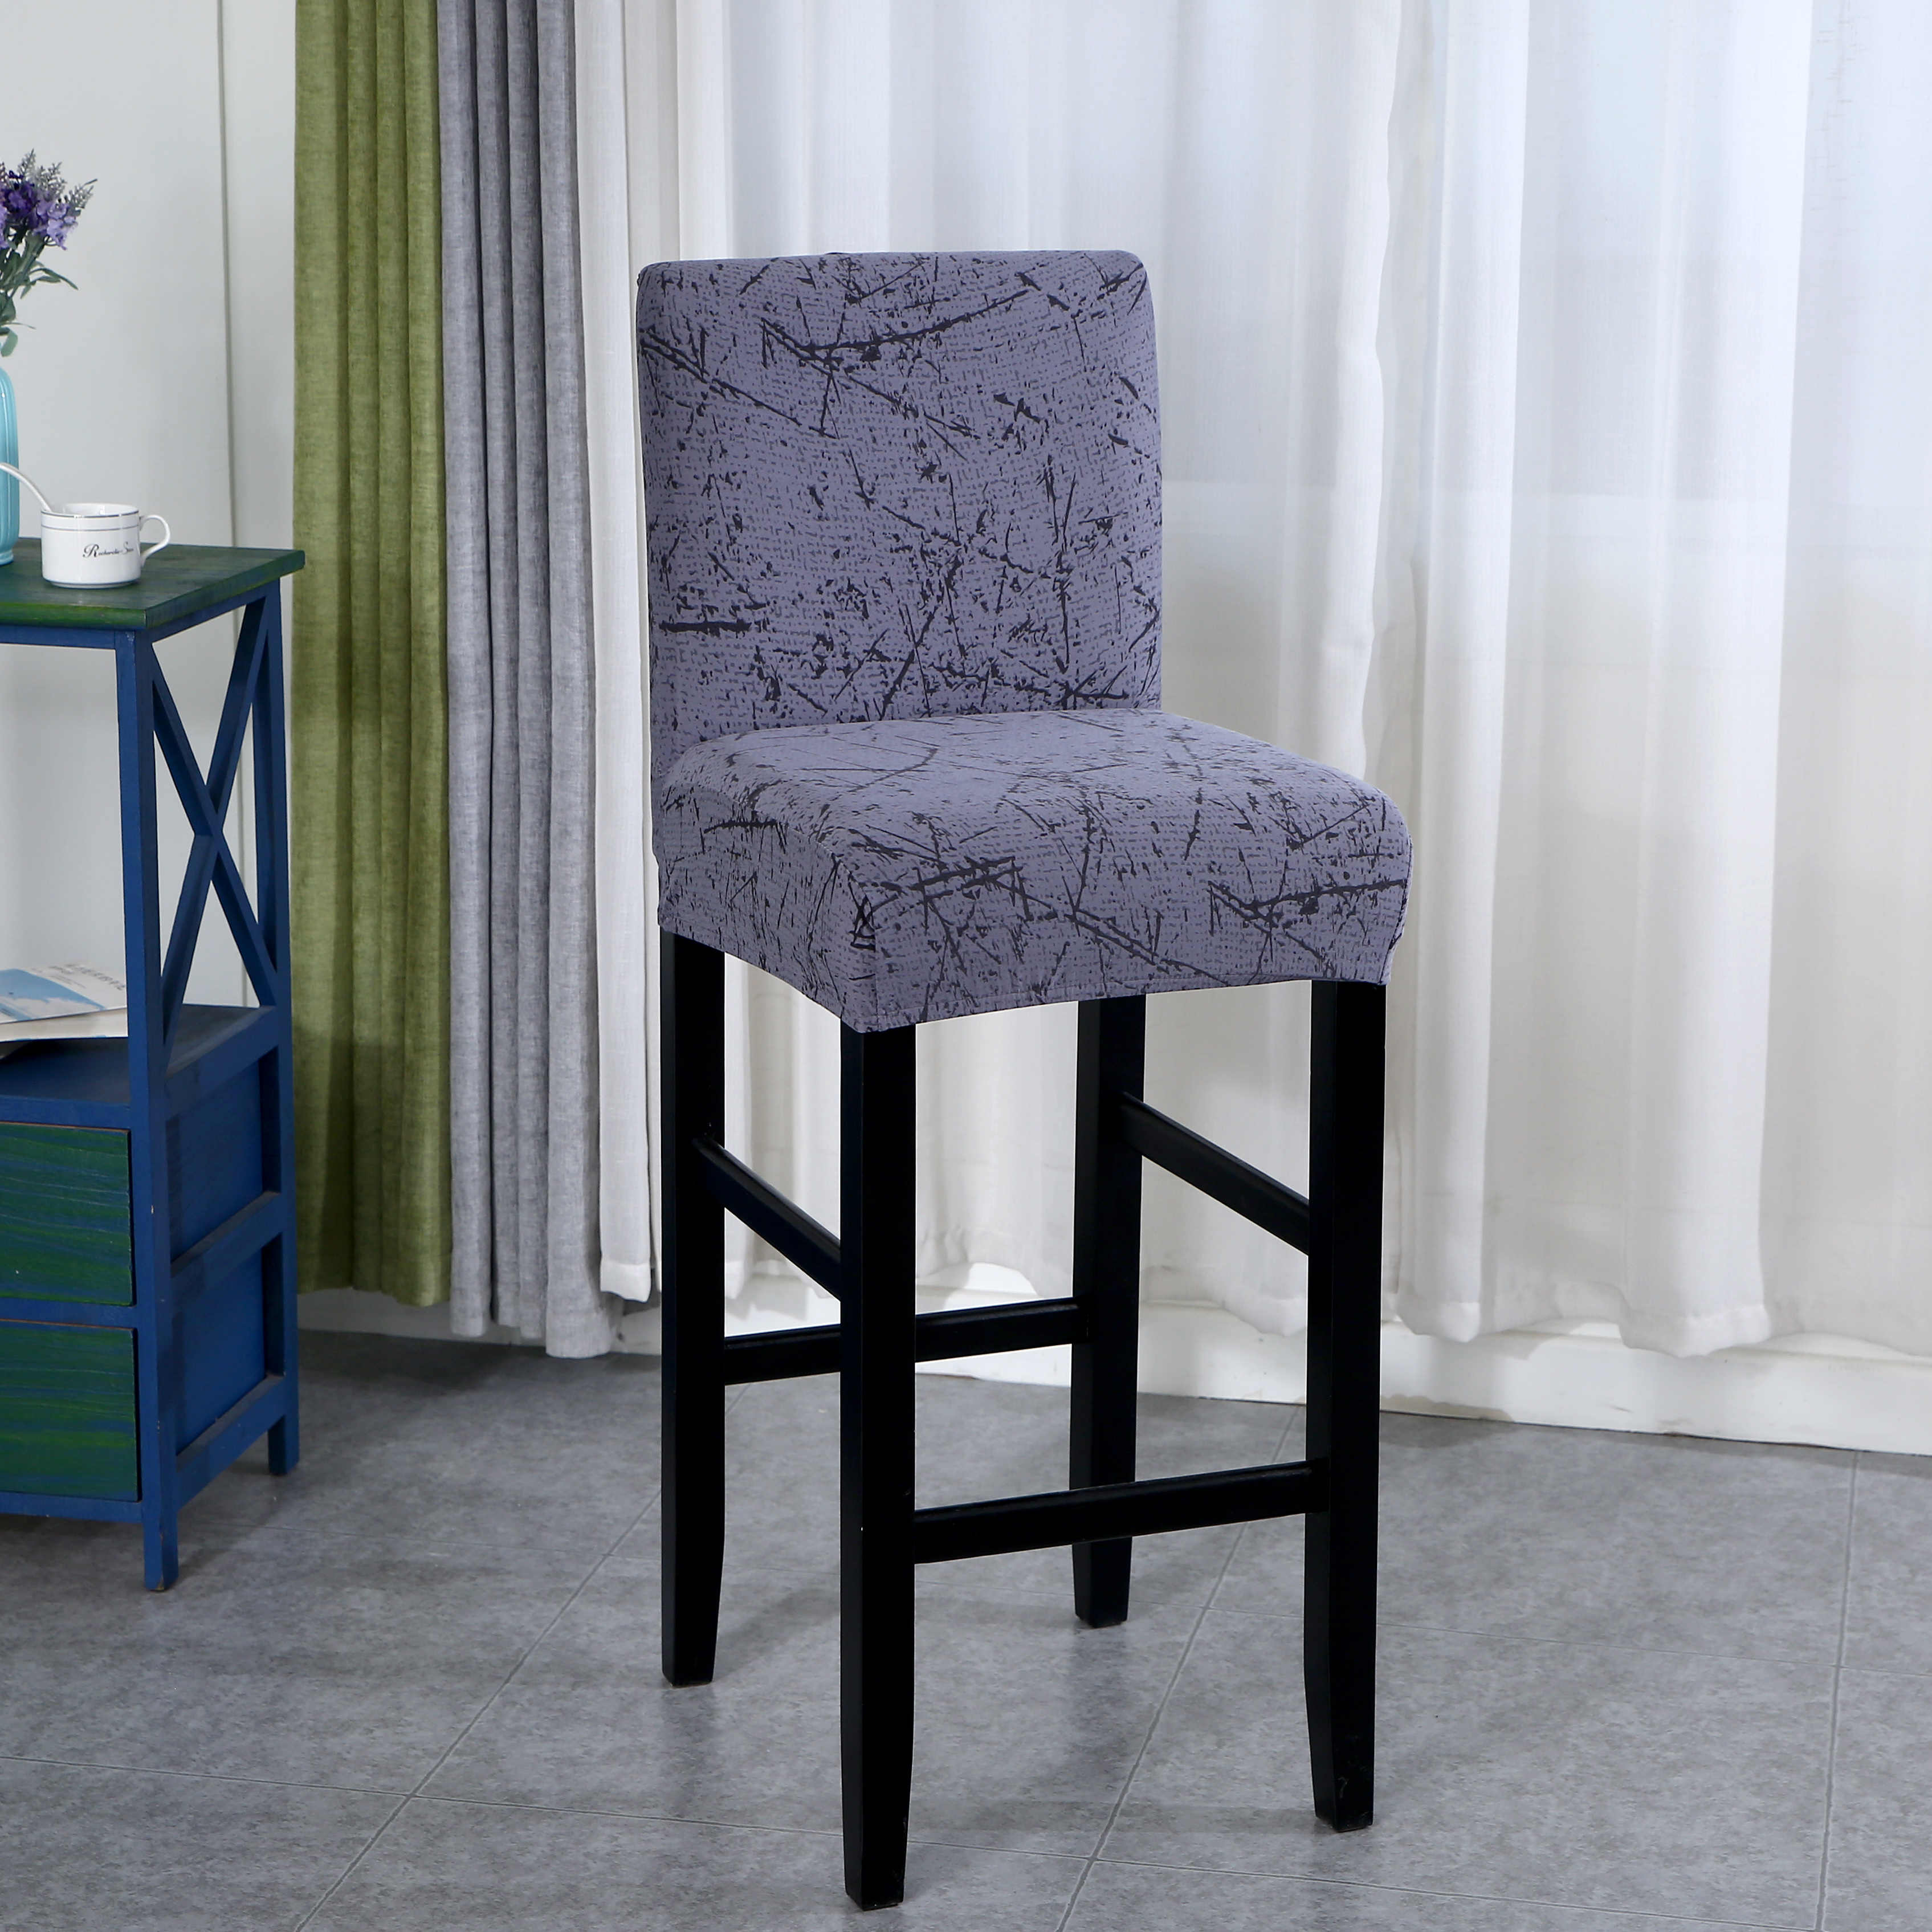 1 2 4 6pieces Elastic Chair Cover For Bar Stool Short Back Dining Room Chair Slipcover Spandex Stretch Case For Chairs Banquet Chair Cover Aliexpress